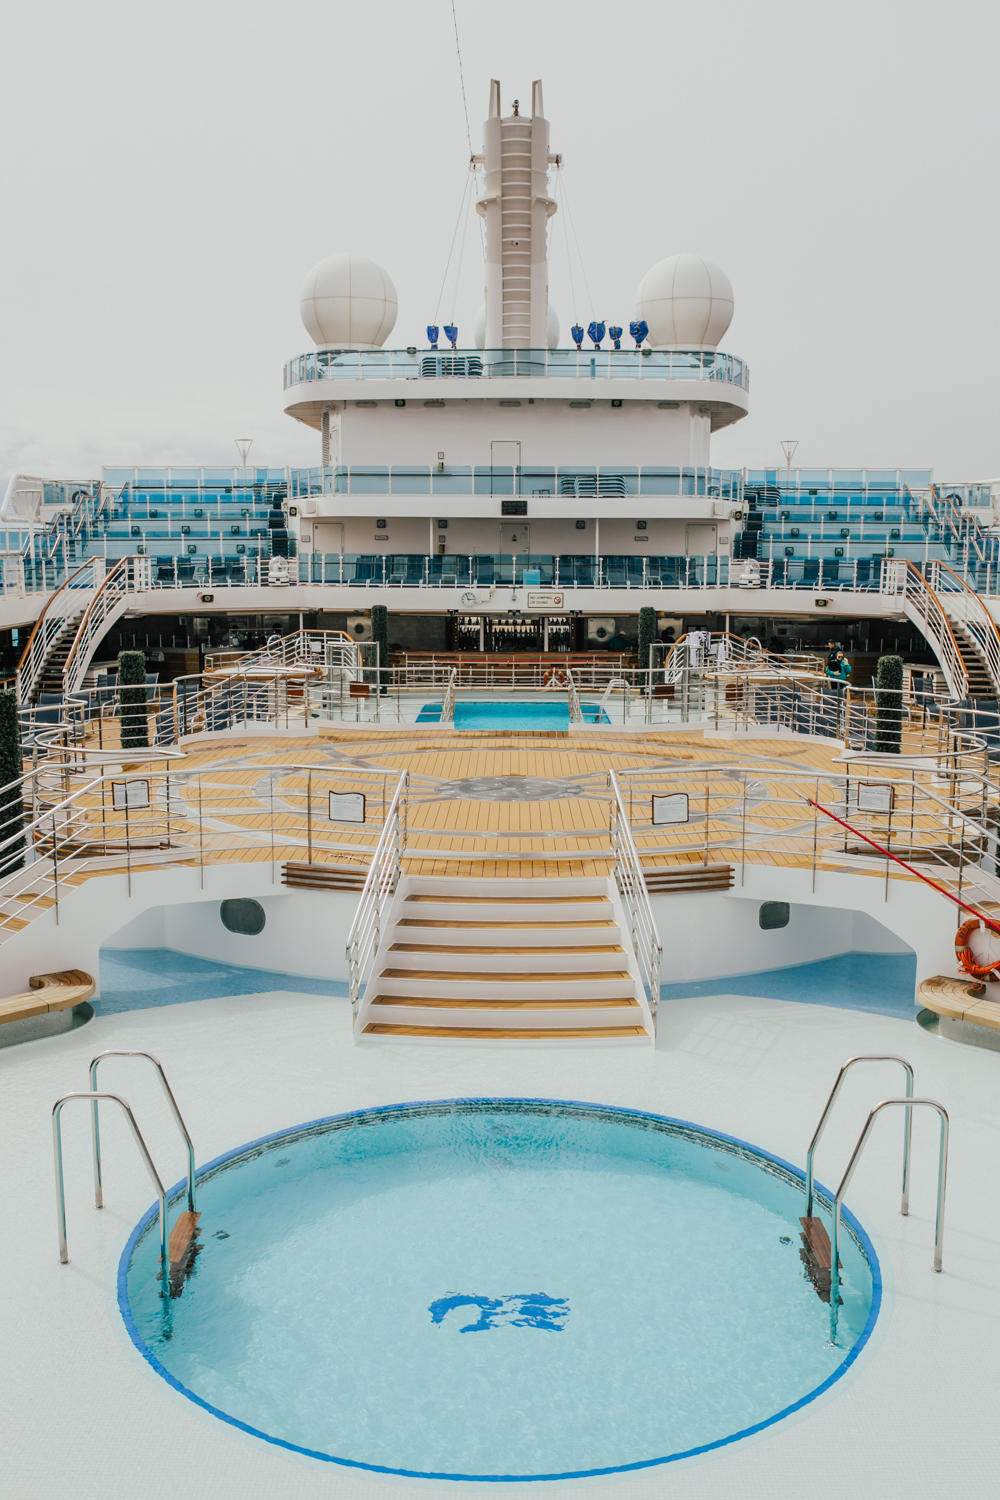 livvyland-blog-olivia-watson-travel-fashion-blogger-princess-cruises-regal-ship-what-to-do-on-board-cruise-boat-pool-deck-view